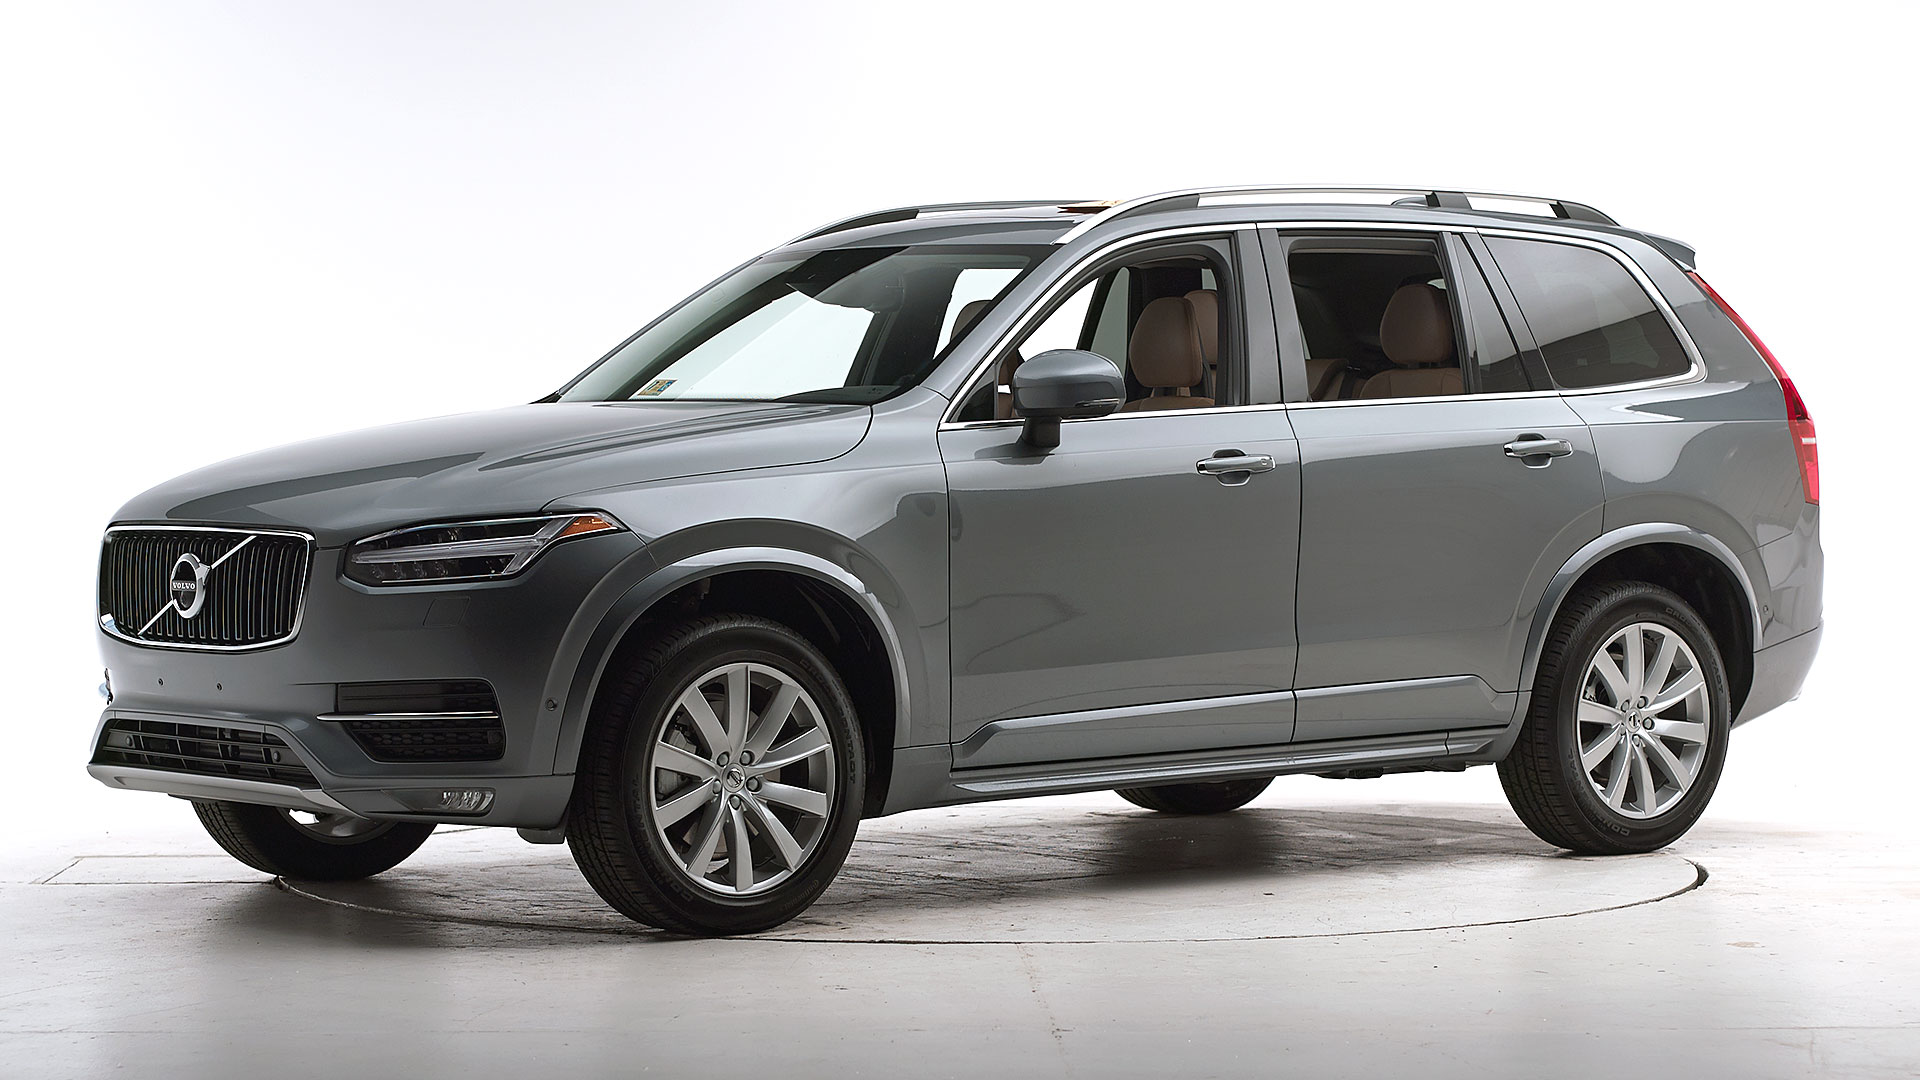 2017 Volvo XC90 4-door SUV